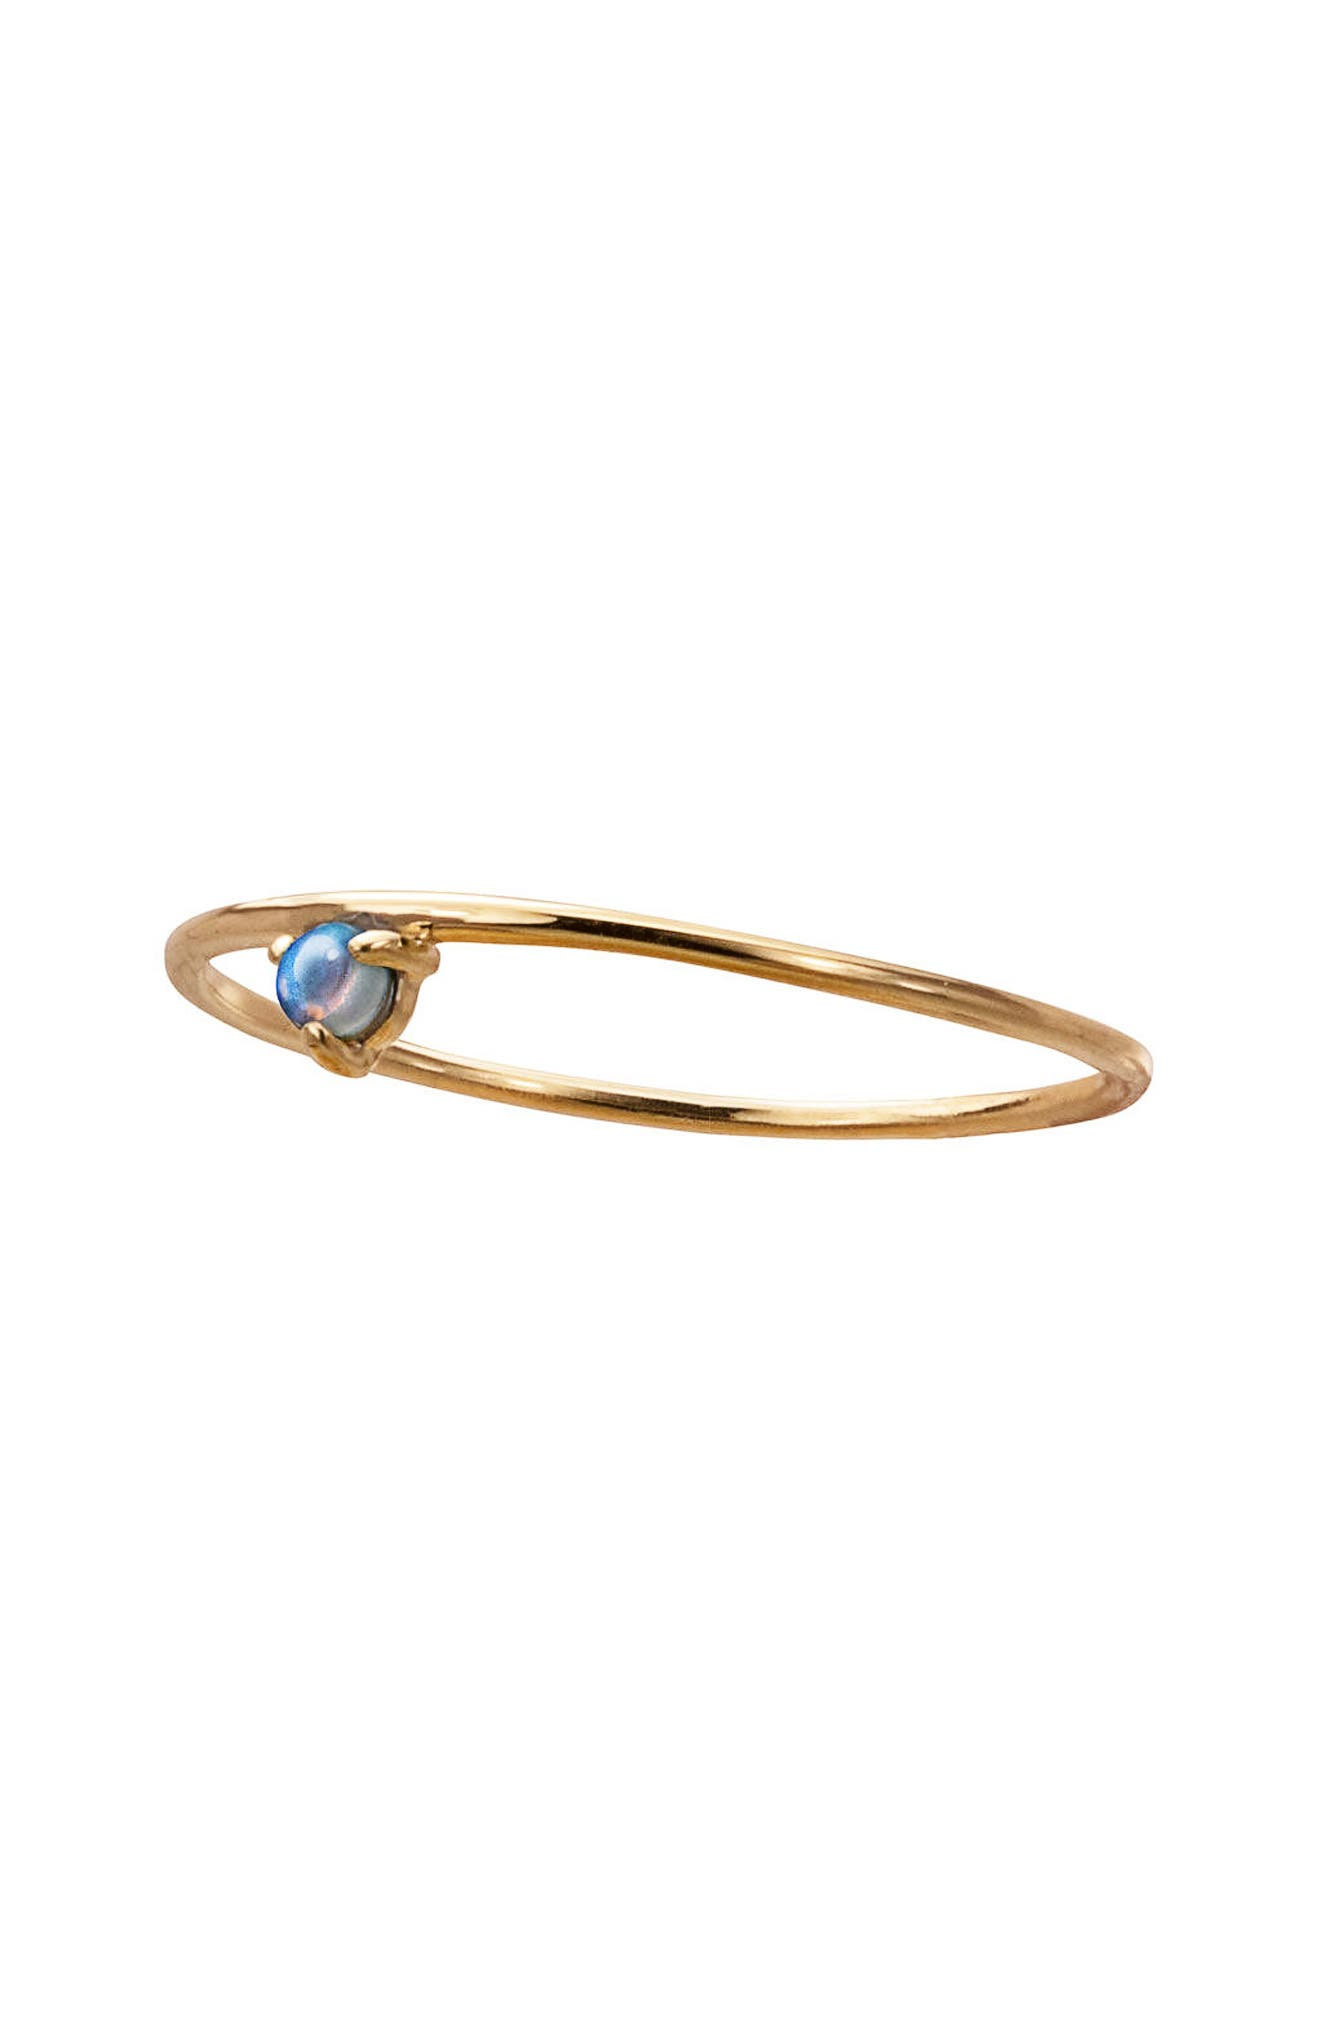 Counting Collection One-Step Opal Ring,                             Alternate thumbnail 2, color,                             YELLOW GOLD